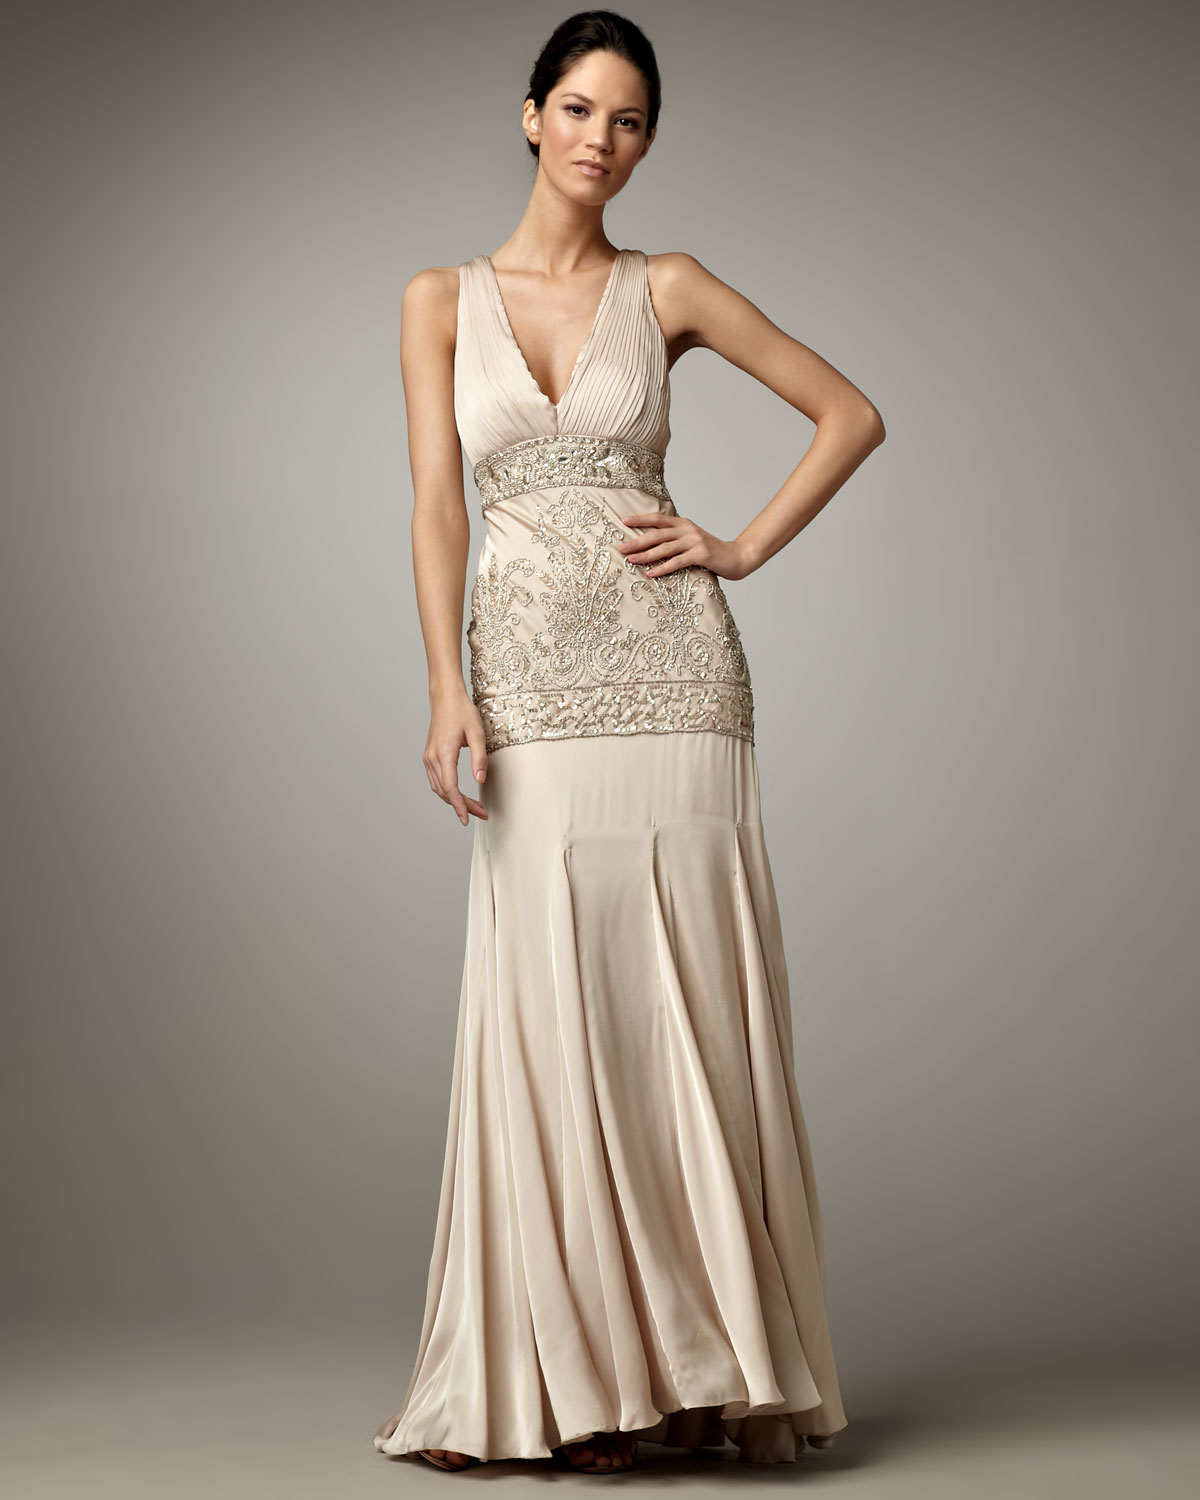 Lyst - Sue Wong Beaded-Bodice Gown in Metallic